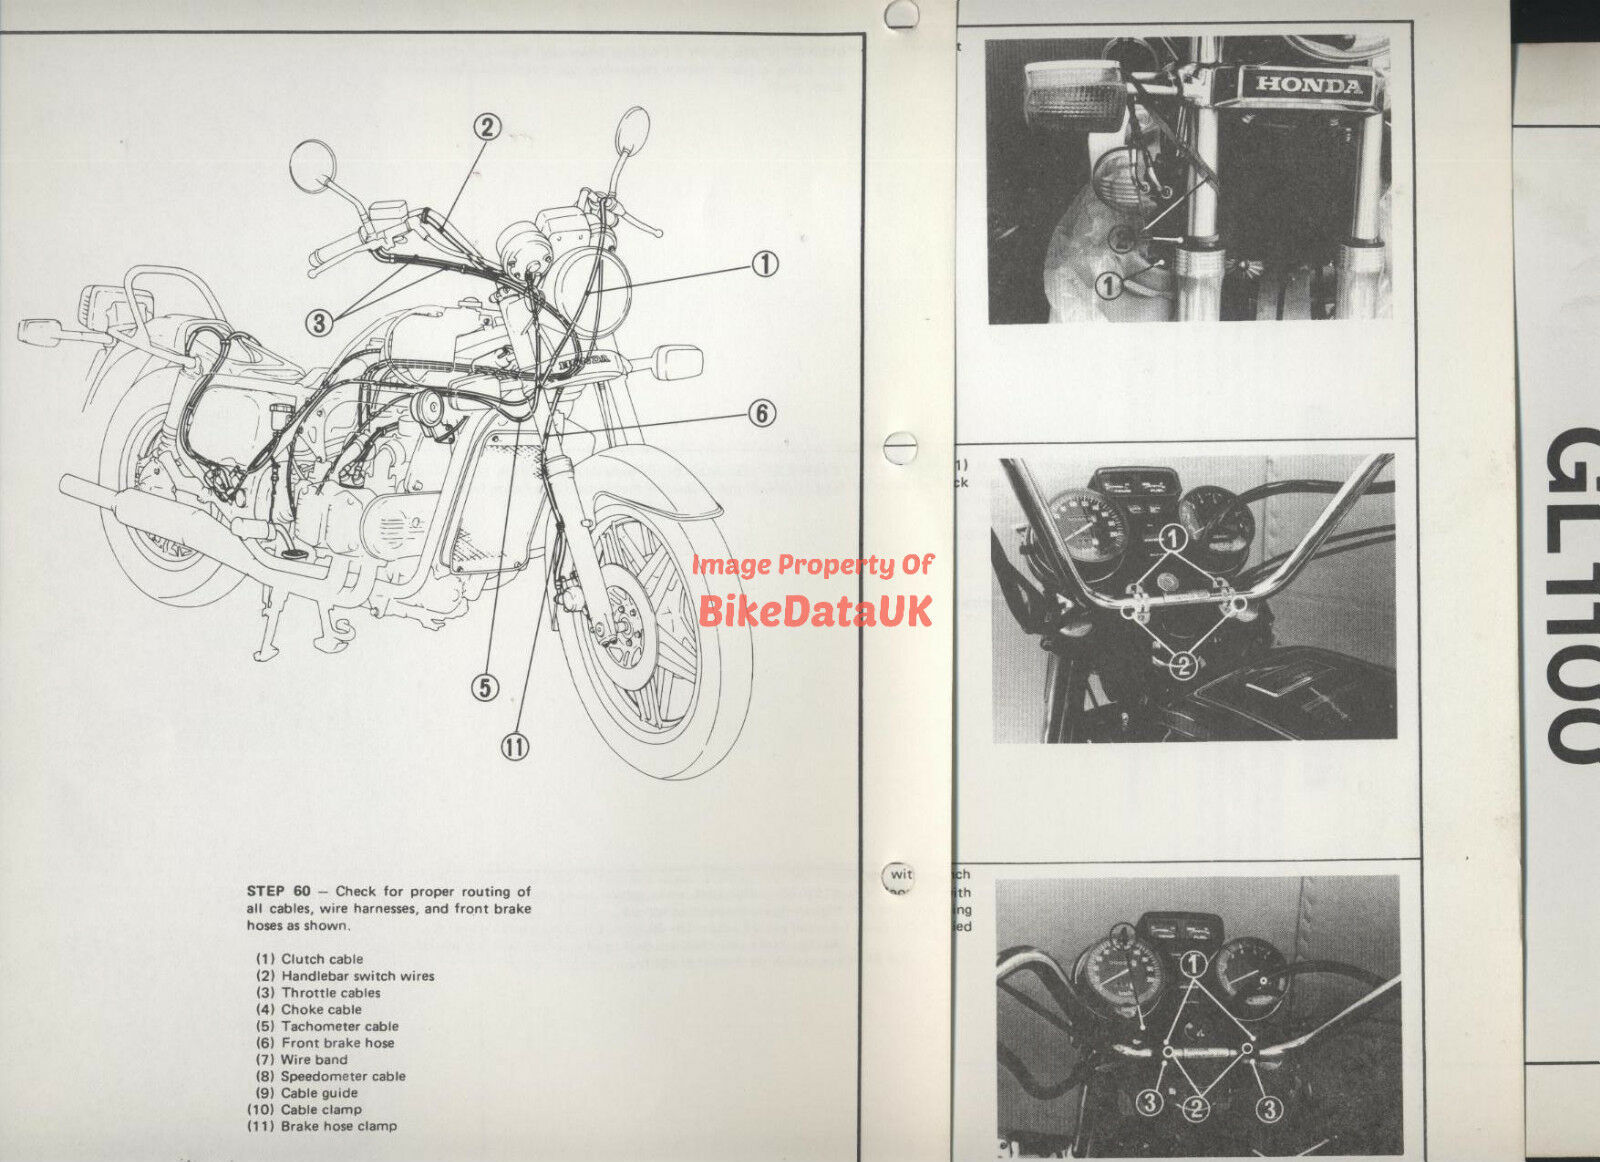 Gl1100 Tachometer Wiring Diagram Trusted Diagrams 1983 Aspencade Schematic Genuine Honda Standard Sc02 80 81 Set Up Manual Gl 1100 Cbr929rr